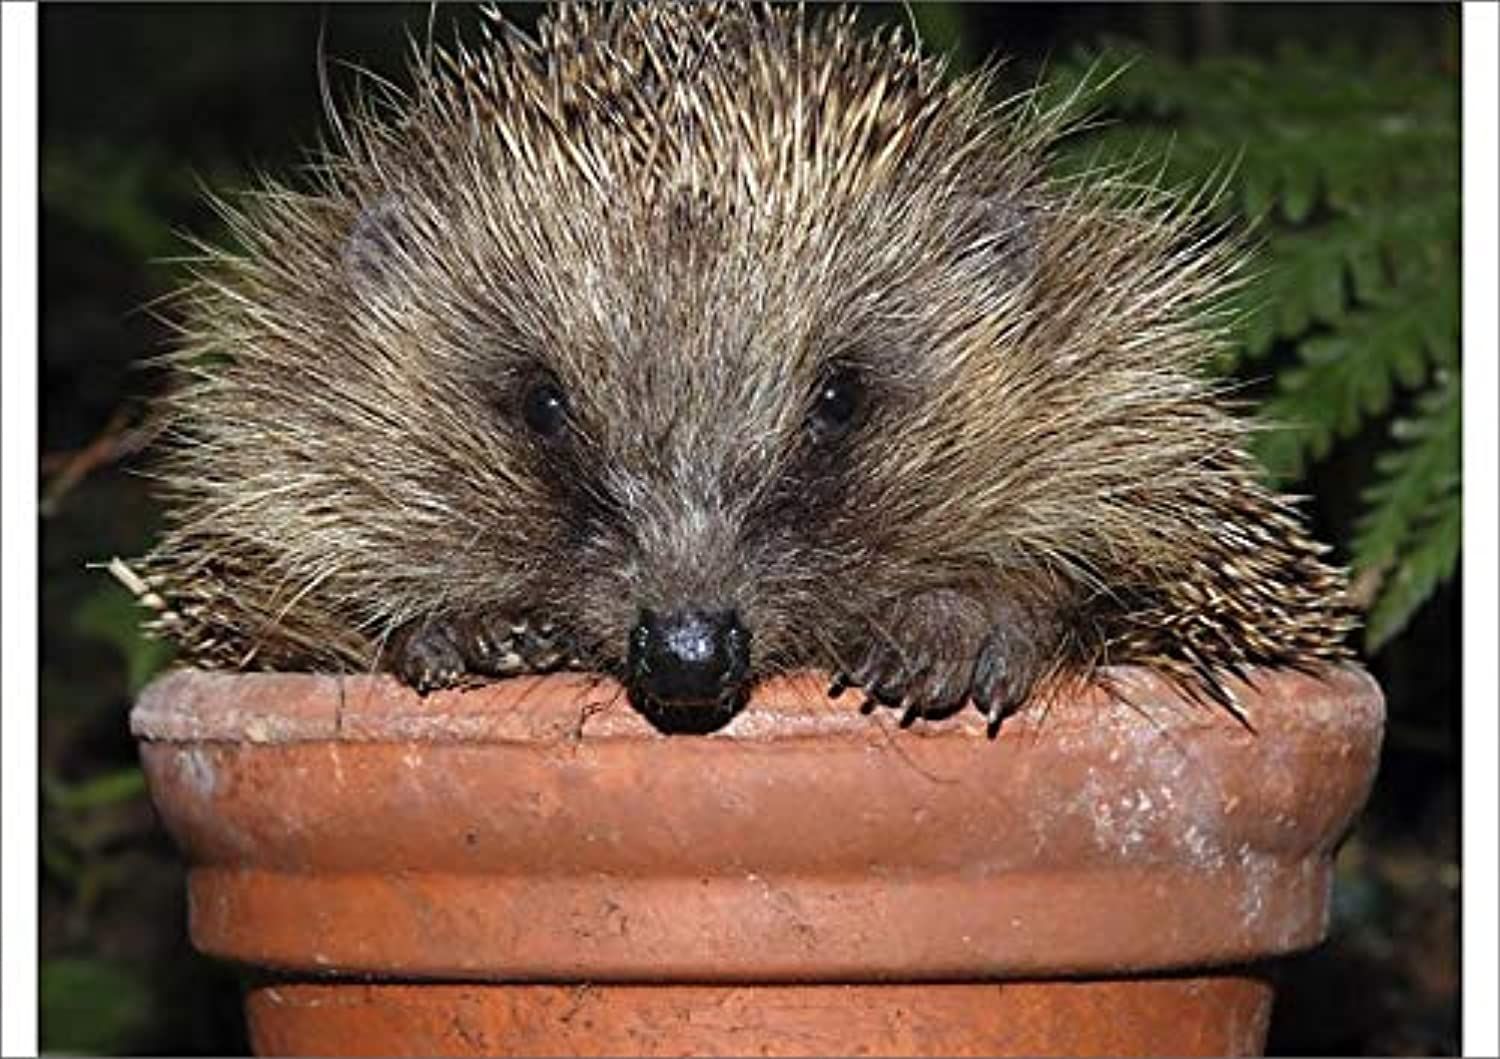 Media Storehouse A1 Poster of Hedgehog - in pot in garden (648782)